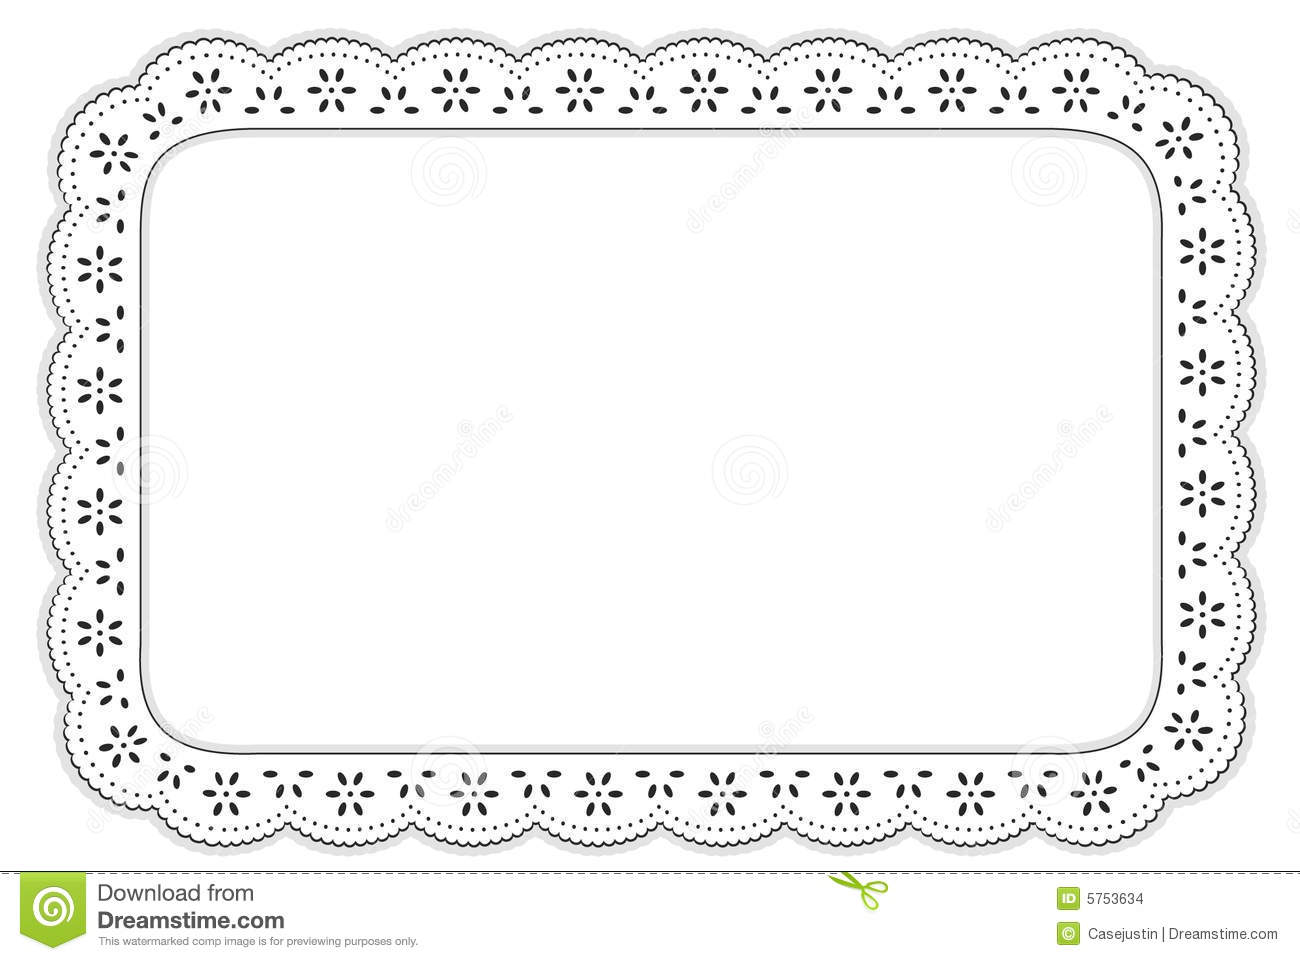 Eyelet Lace Place Mat Black And White Stock Vector